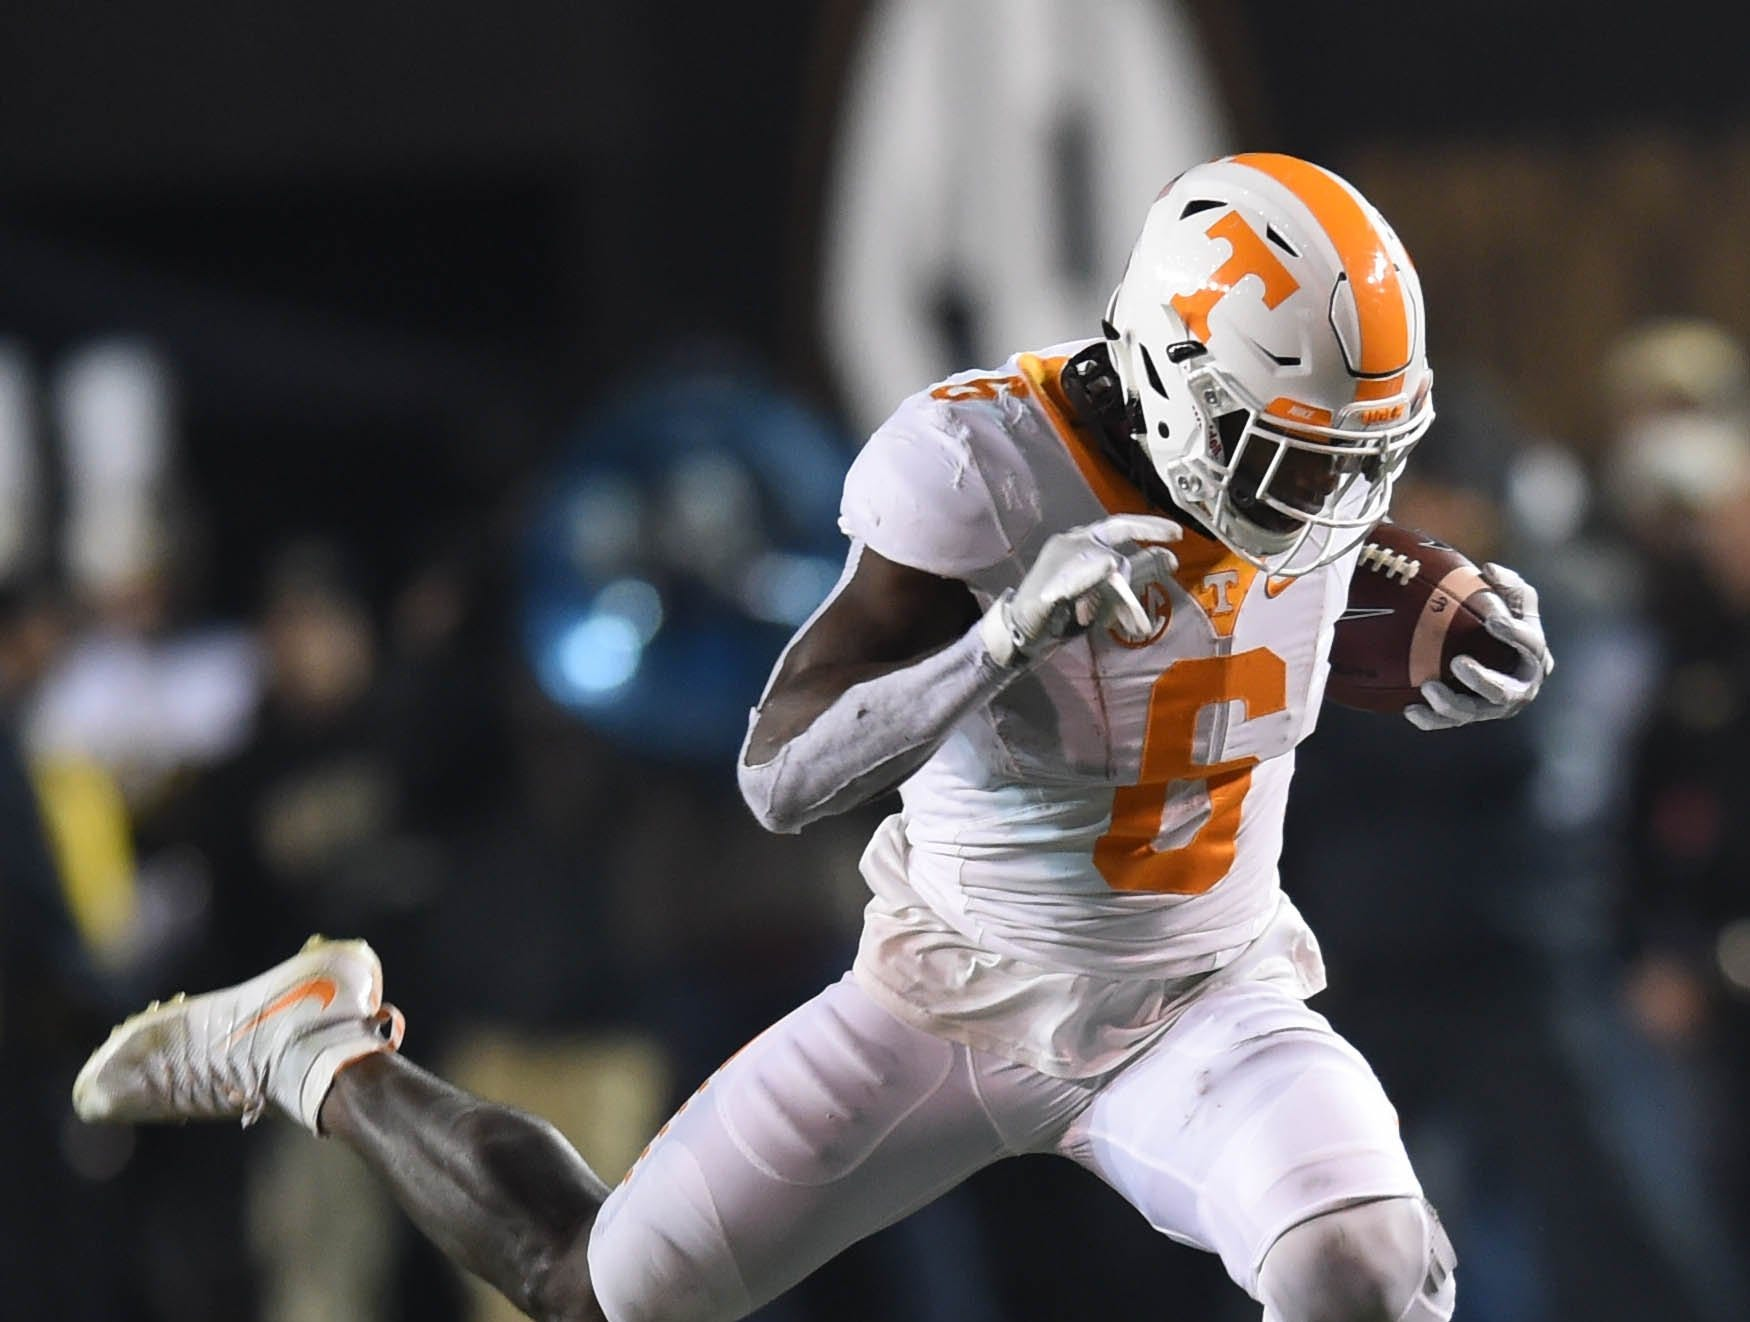 Tennessee running back Alvin Kamara (6) leaps over Vanderbilt safety Ryan White (14) during the first half at Vanderbilt Stadium on Saturday, Nov. 26, 2016. Vanderbilt won the game 45-34.